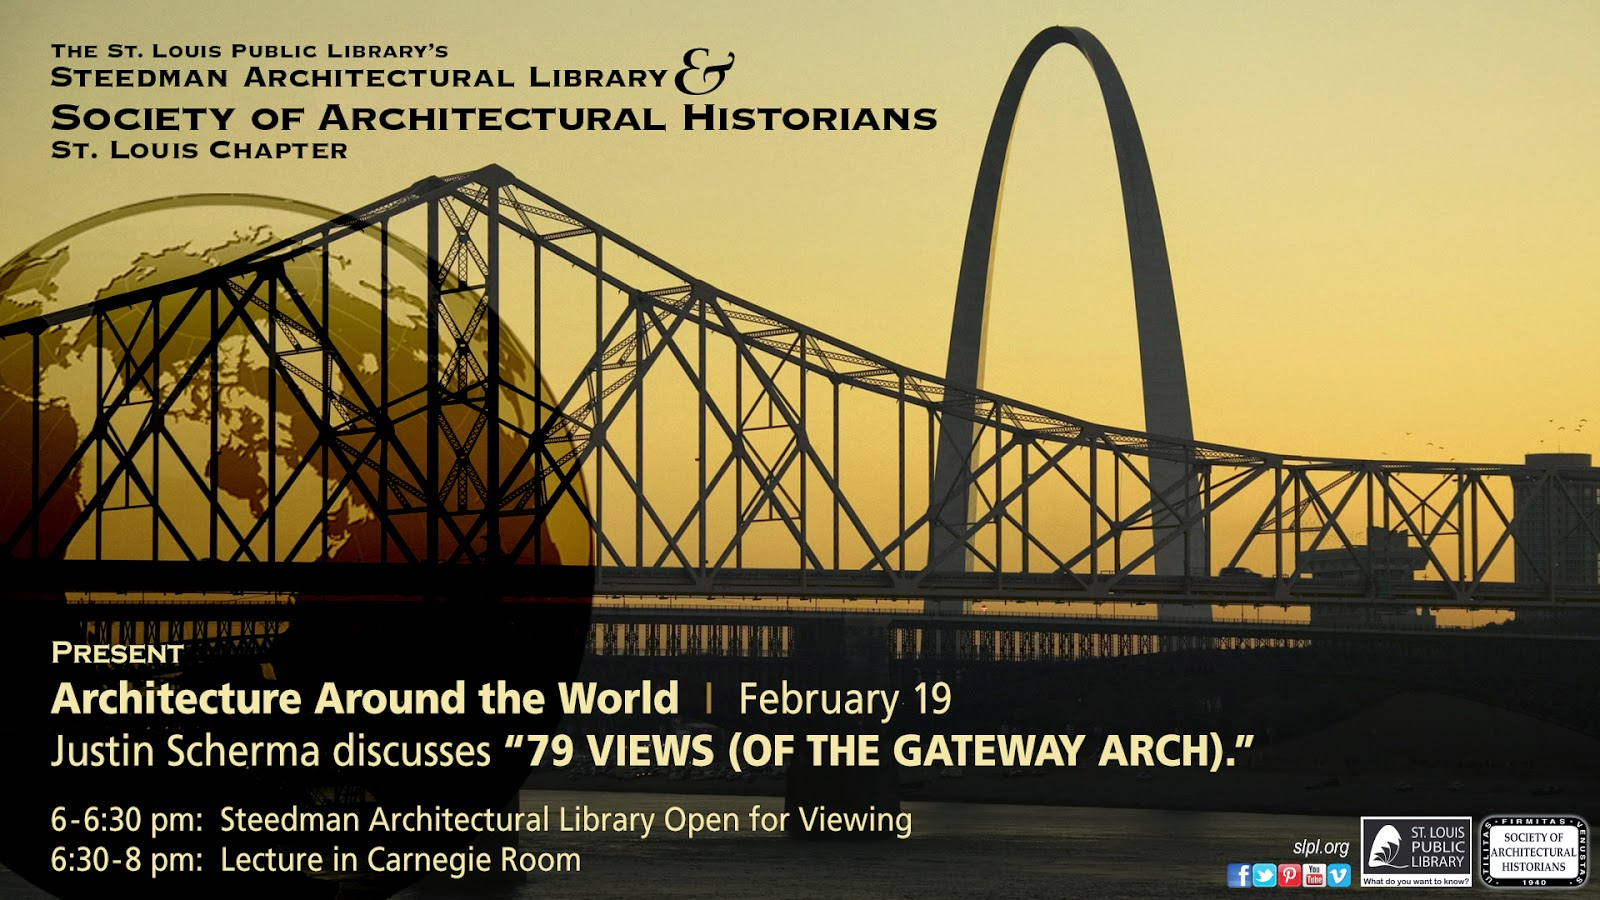 http://steedmanarchitecturallibrary.blogspot.com/2015/02/architectural-lecture-series-starts.html